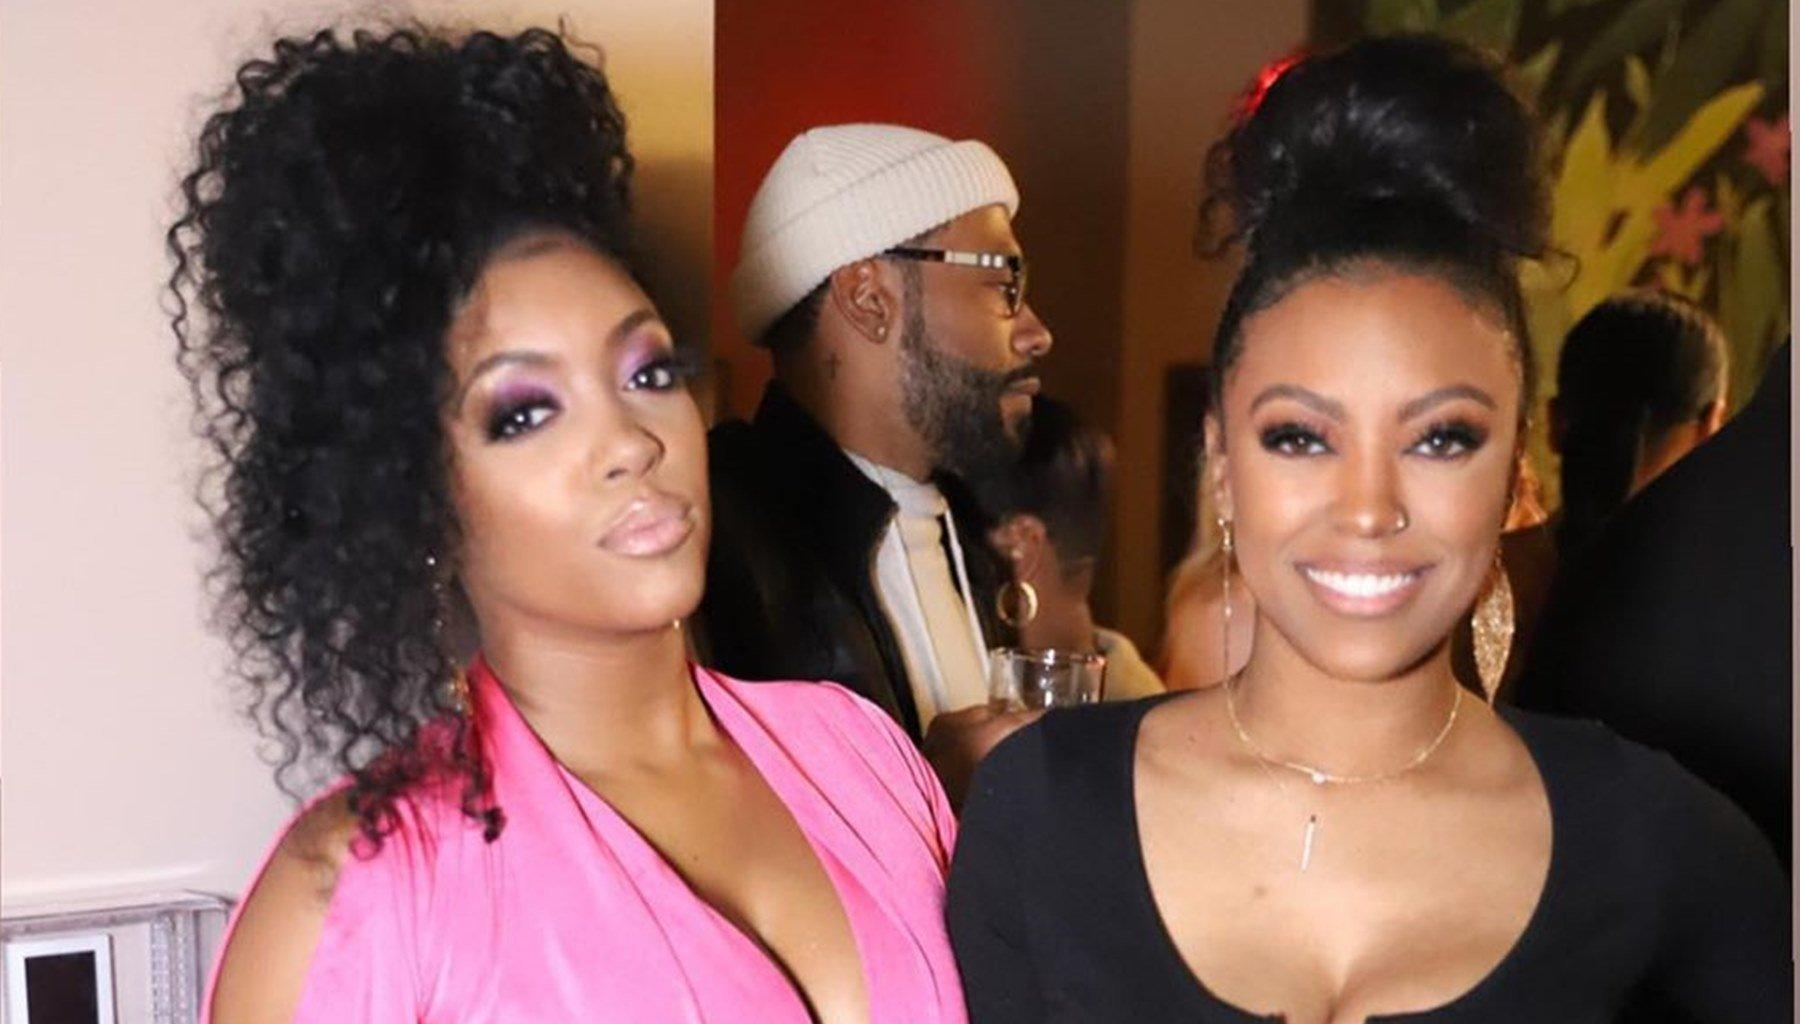 Porsha Williams Gushes Over Her Sister, Lauren Williams - See The Sweet Photo She Shared